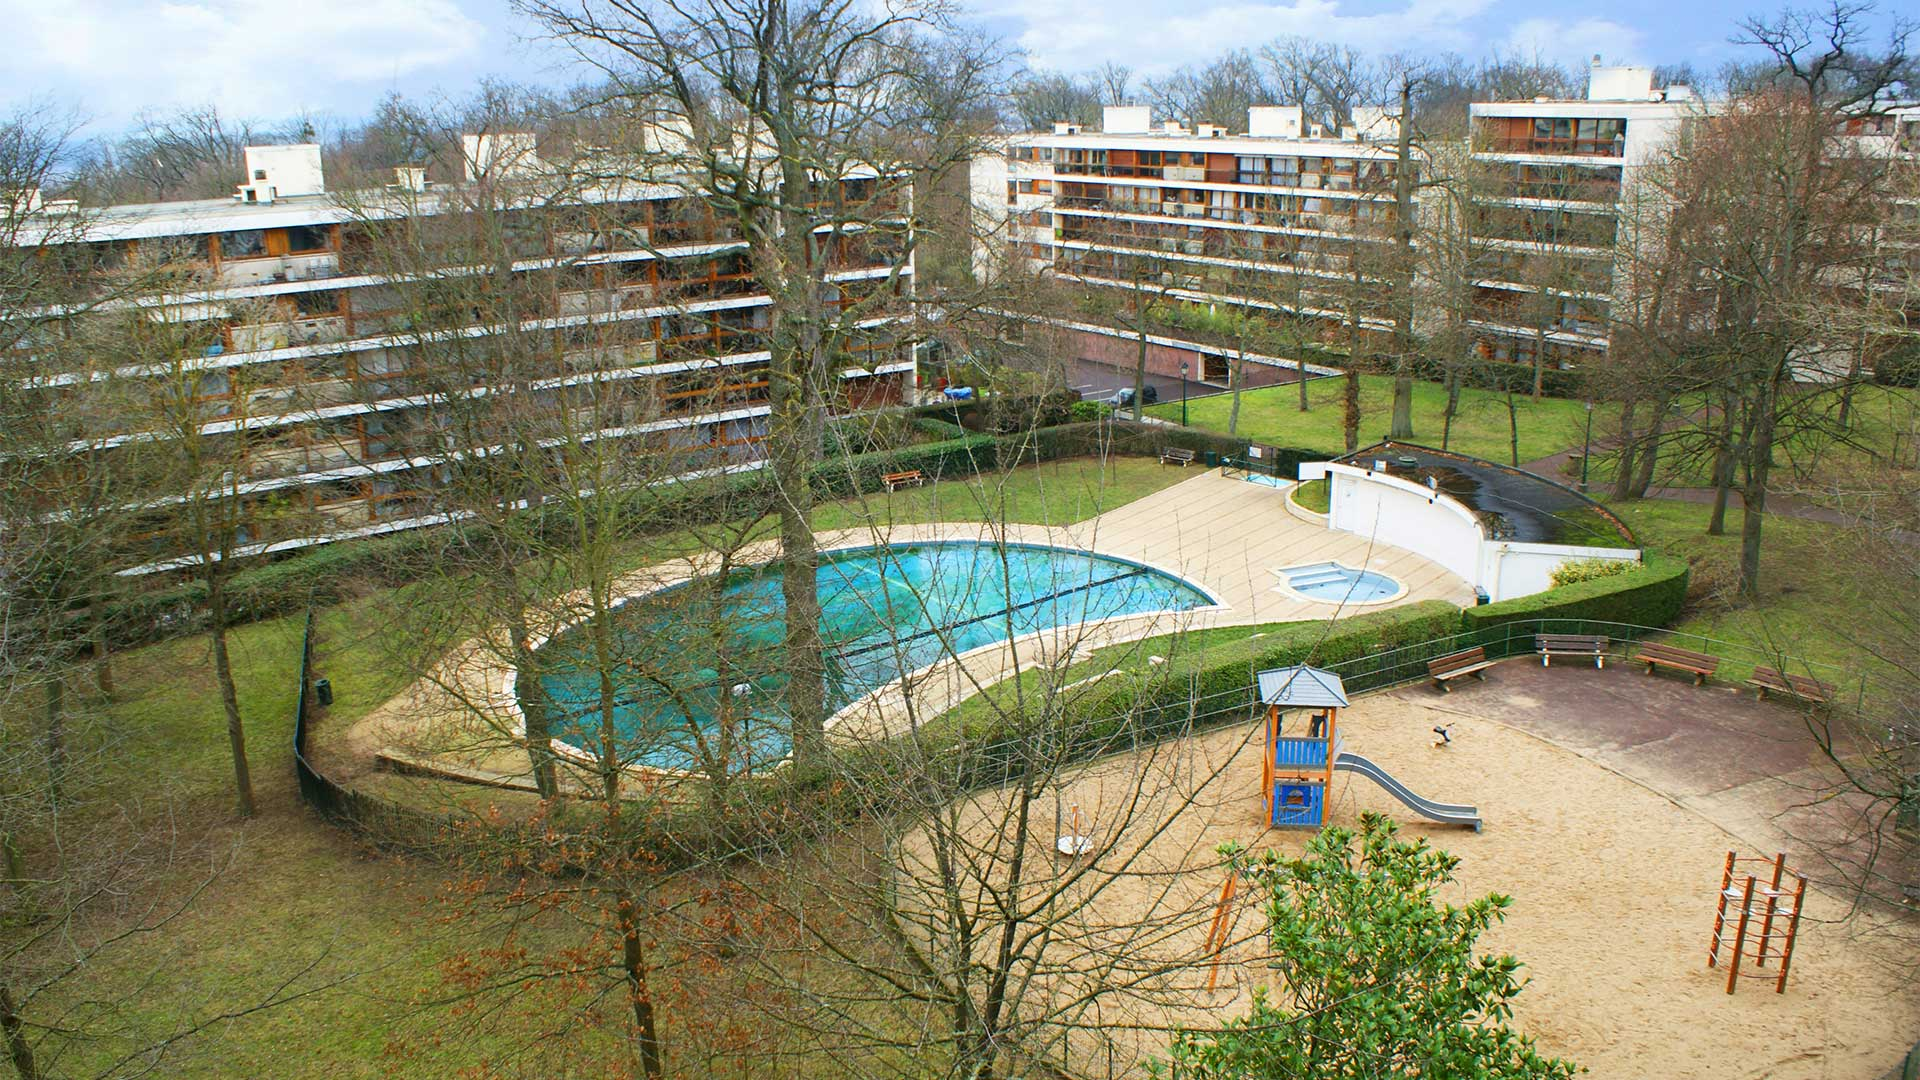 Piscine la celle st cloud trendy piscine la celle st for Piscine saint cloud